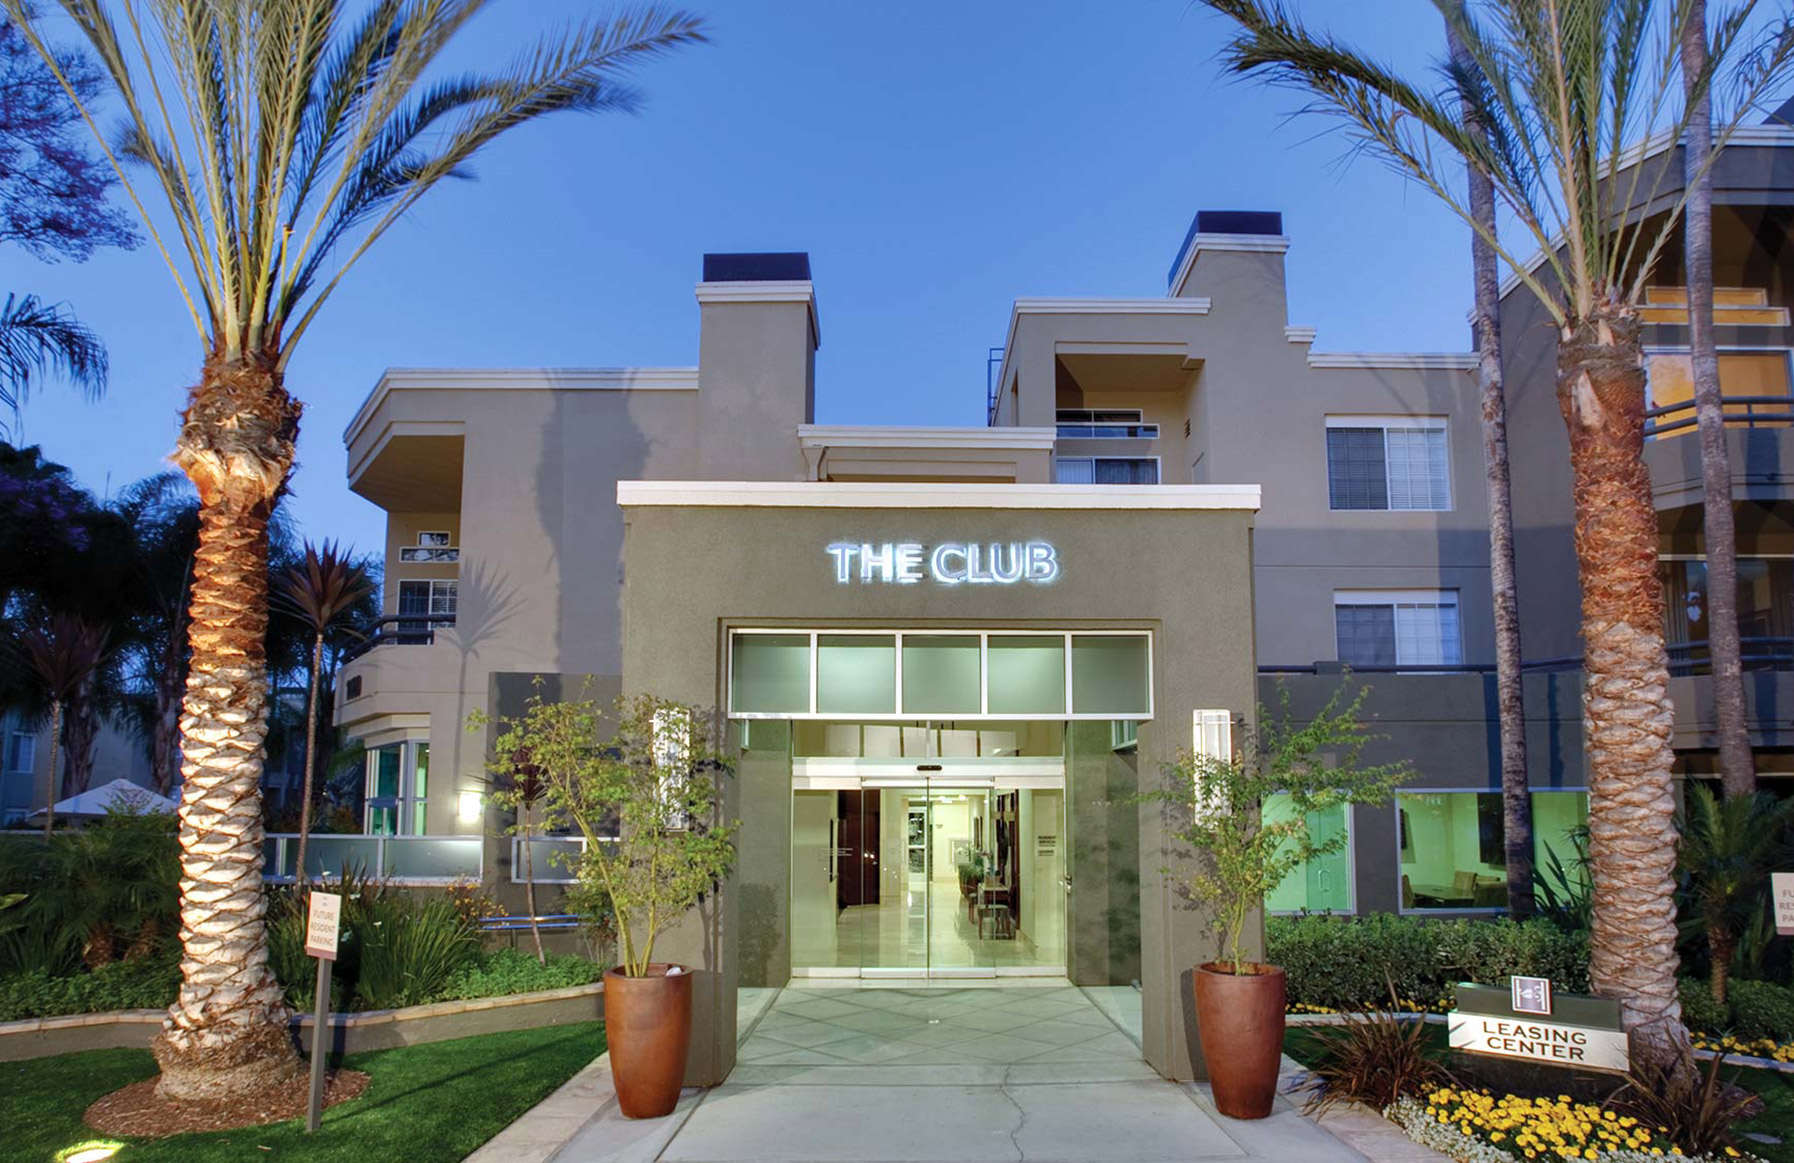 Hillcreste Apartments - Los Angeles, CA - Clubhouse